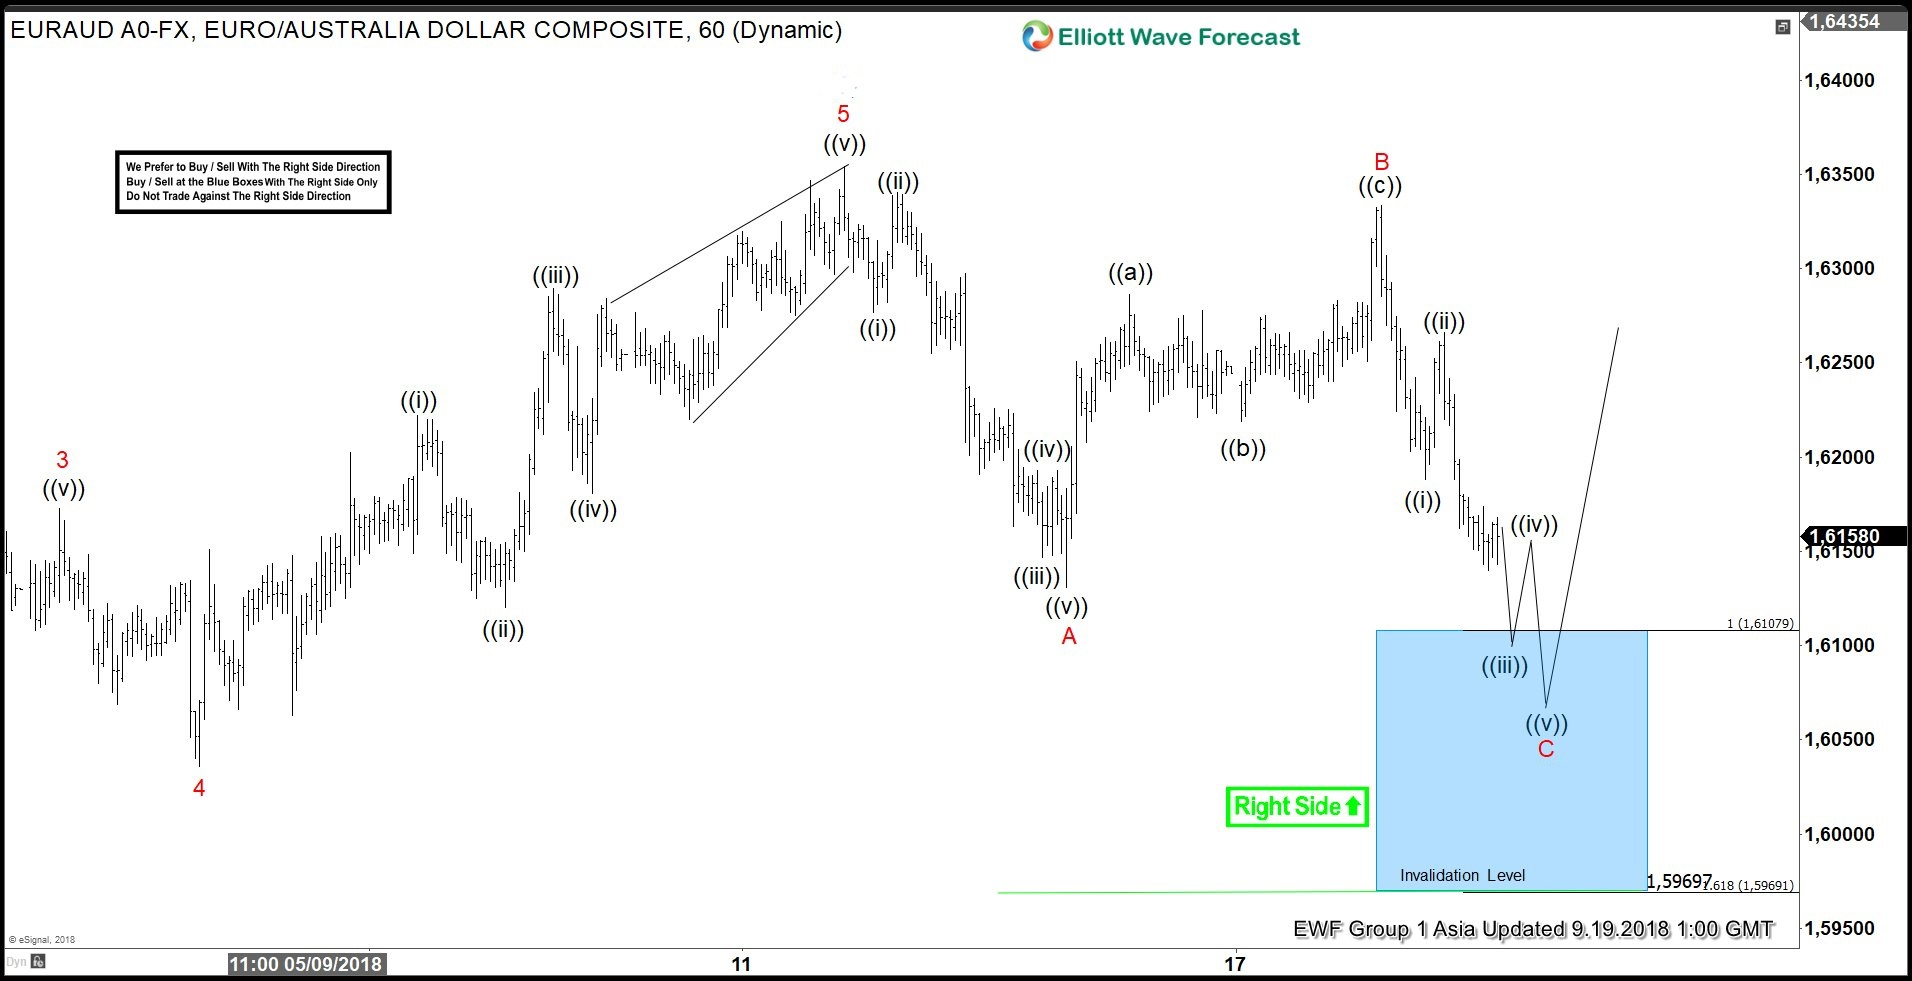 EURAUD, forex, elliottwave, elliott wave, patterns, technical analysis